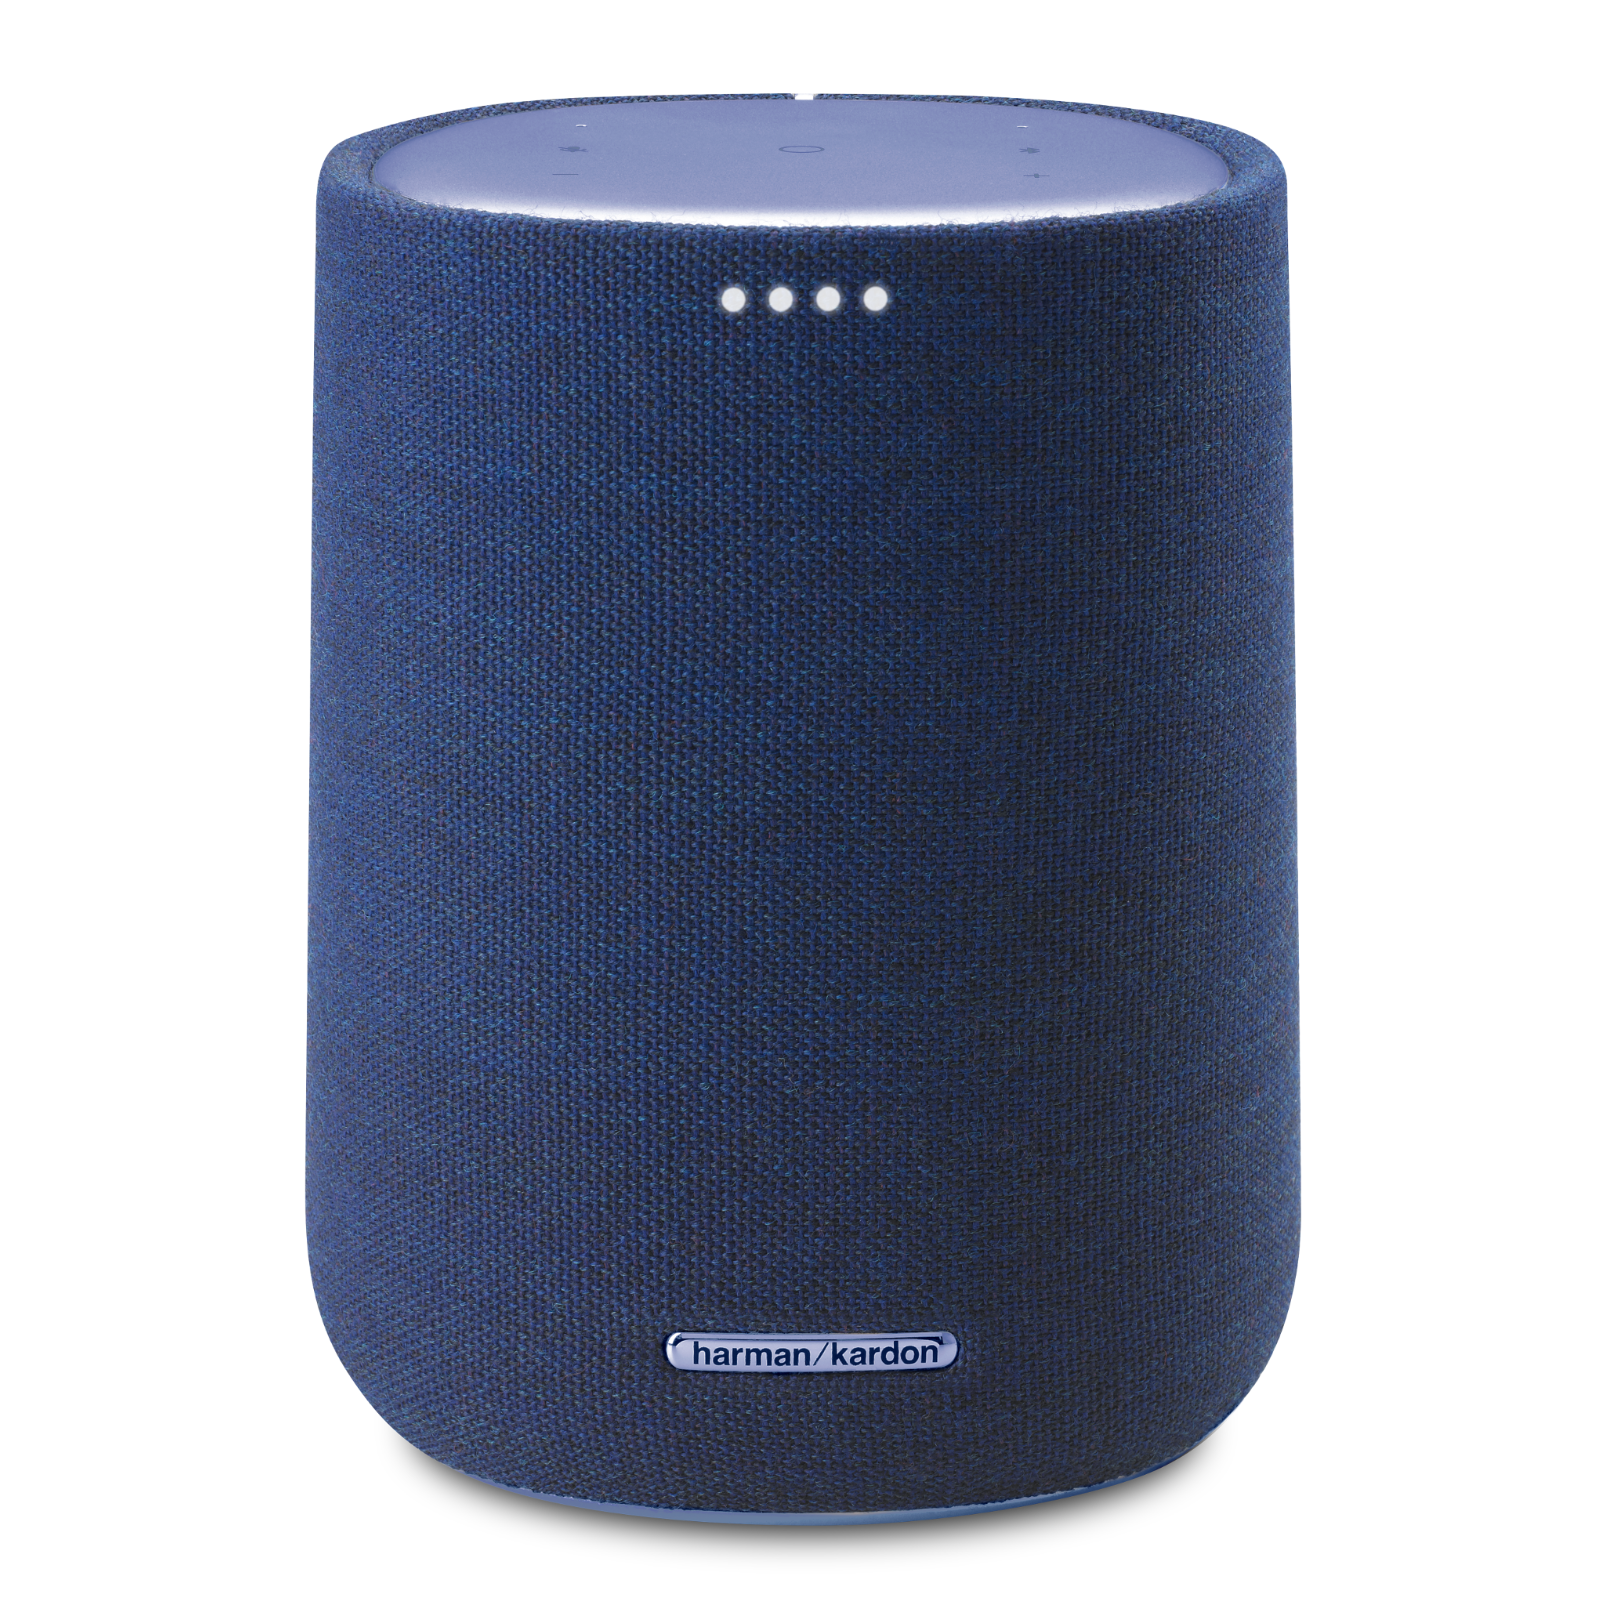 Harman Kardon Citation One MKII - Blue - All-in-one smart speaker with room-filling sound - Hero